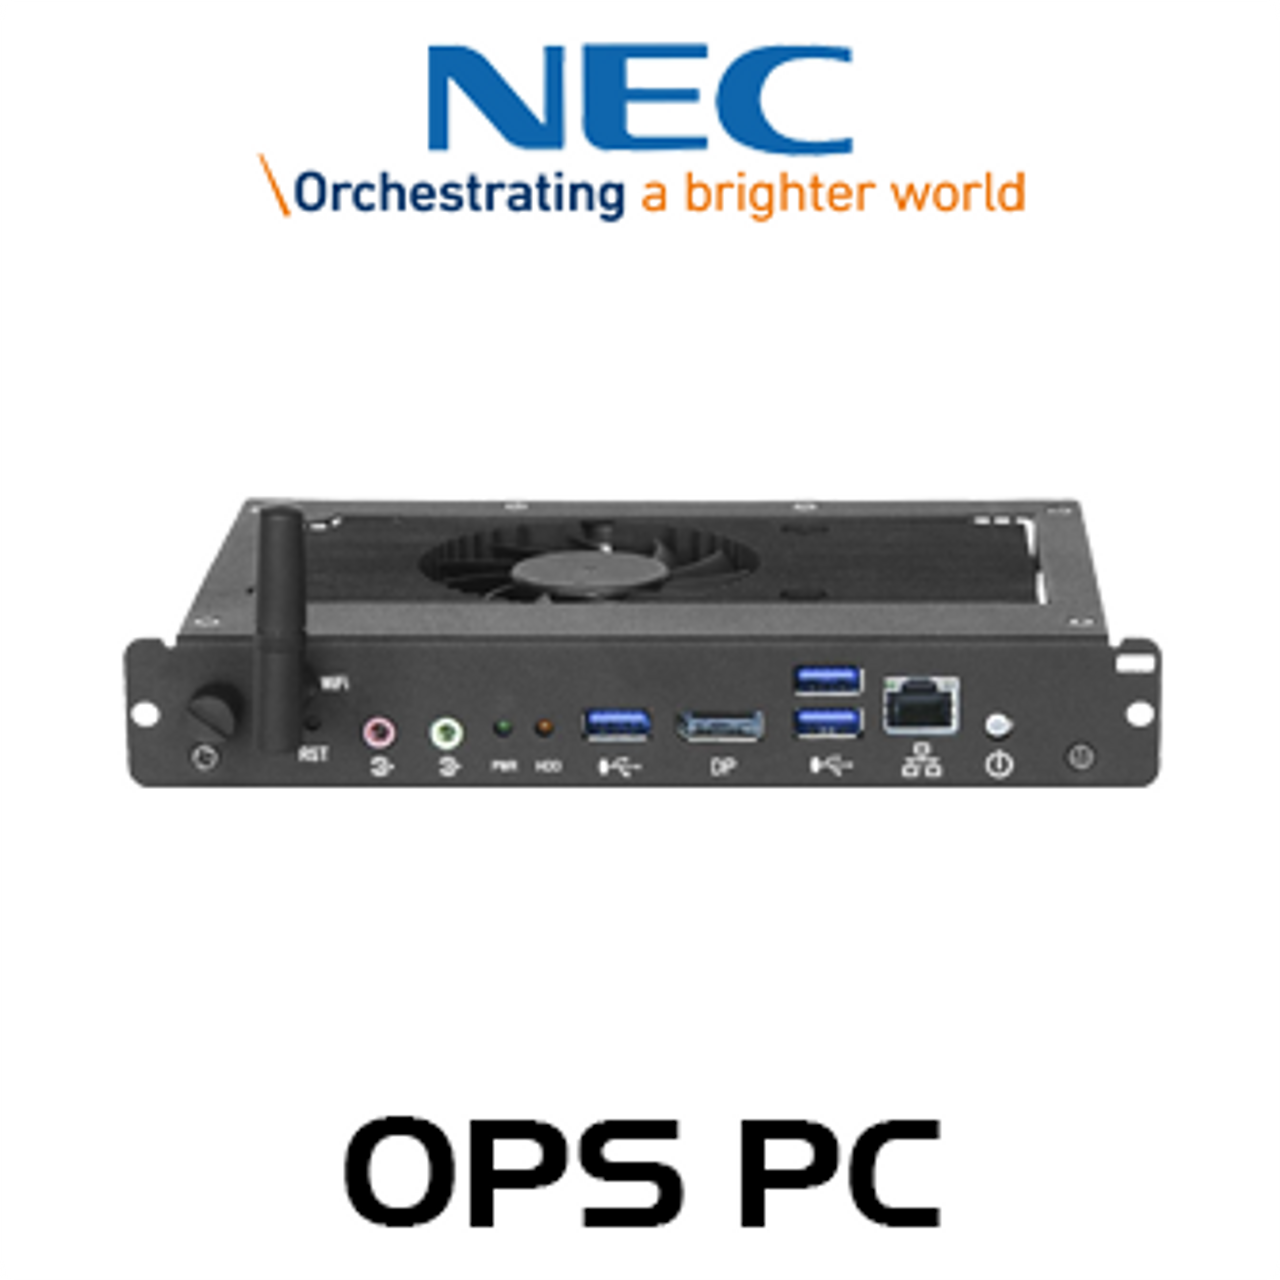 NEC OPS SSD Slot-In PC Module with Intel 6th Generation Processor